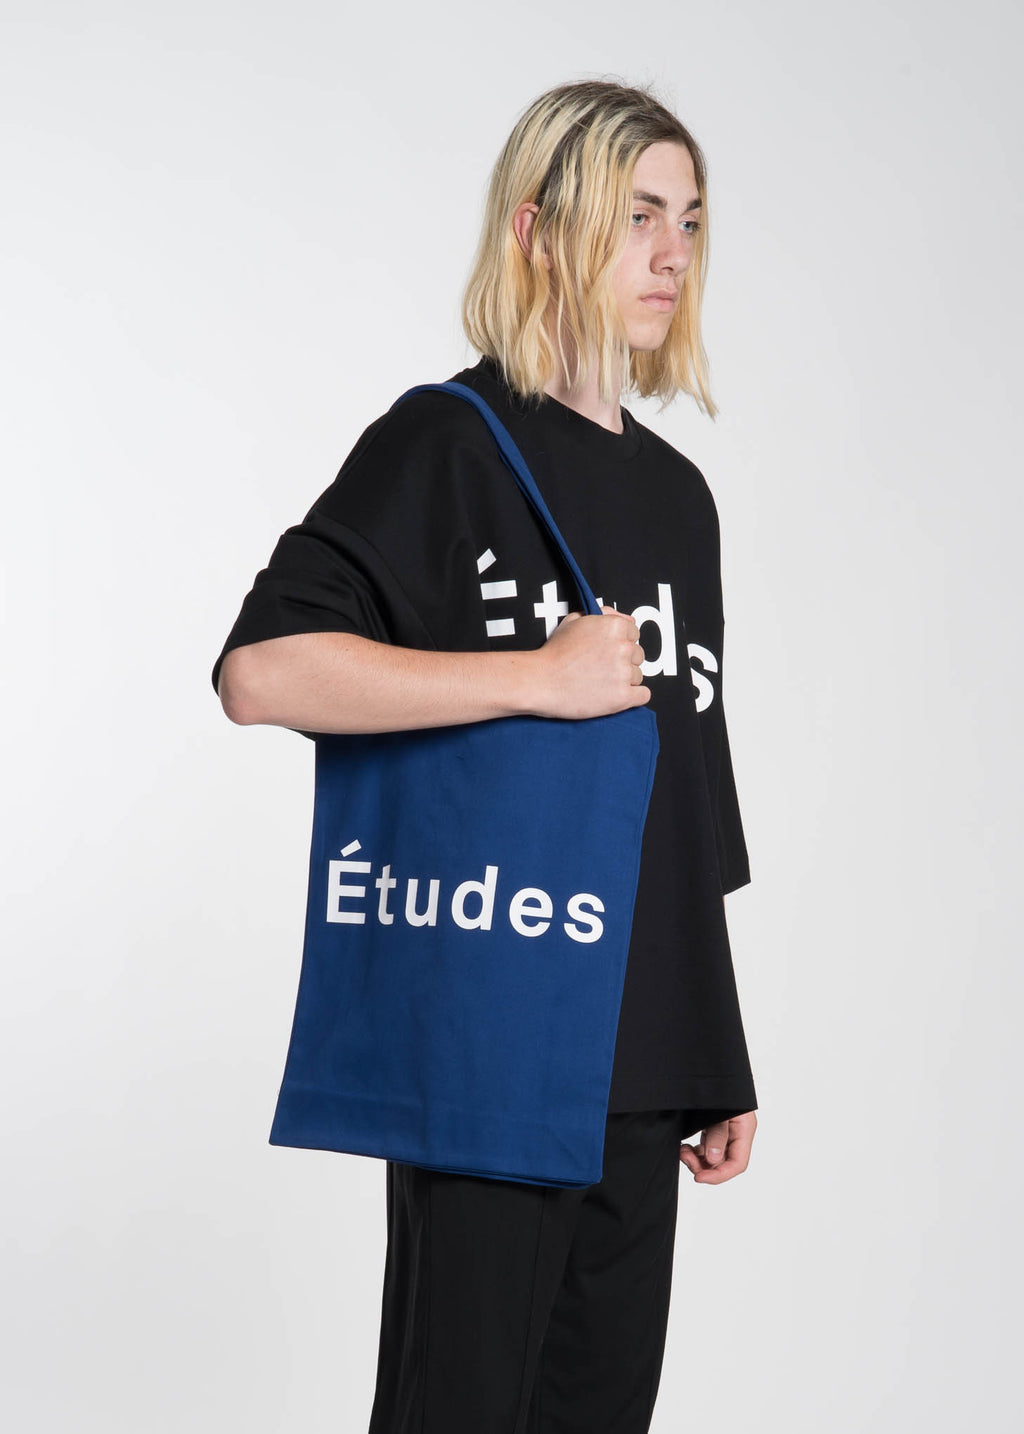 Etudes, Etudes Blue October Tote Bag, 017 Shop